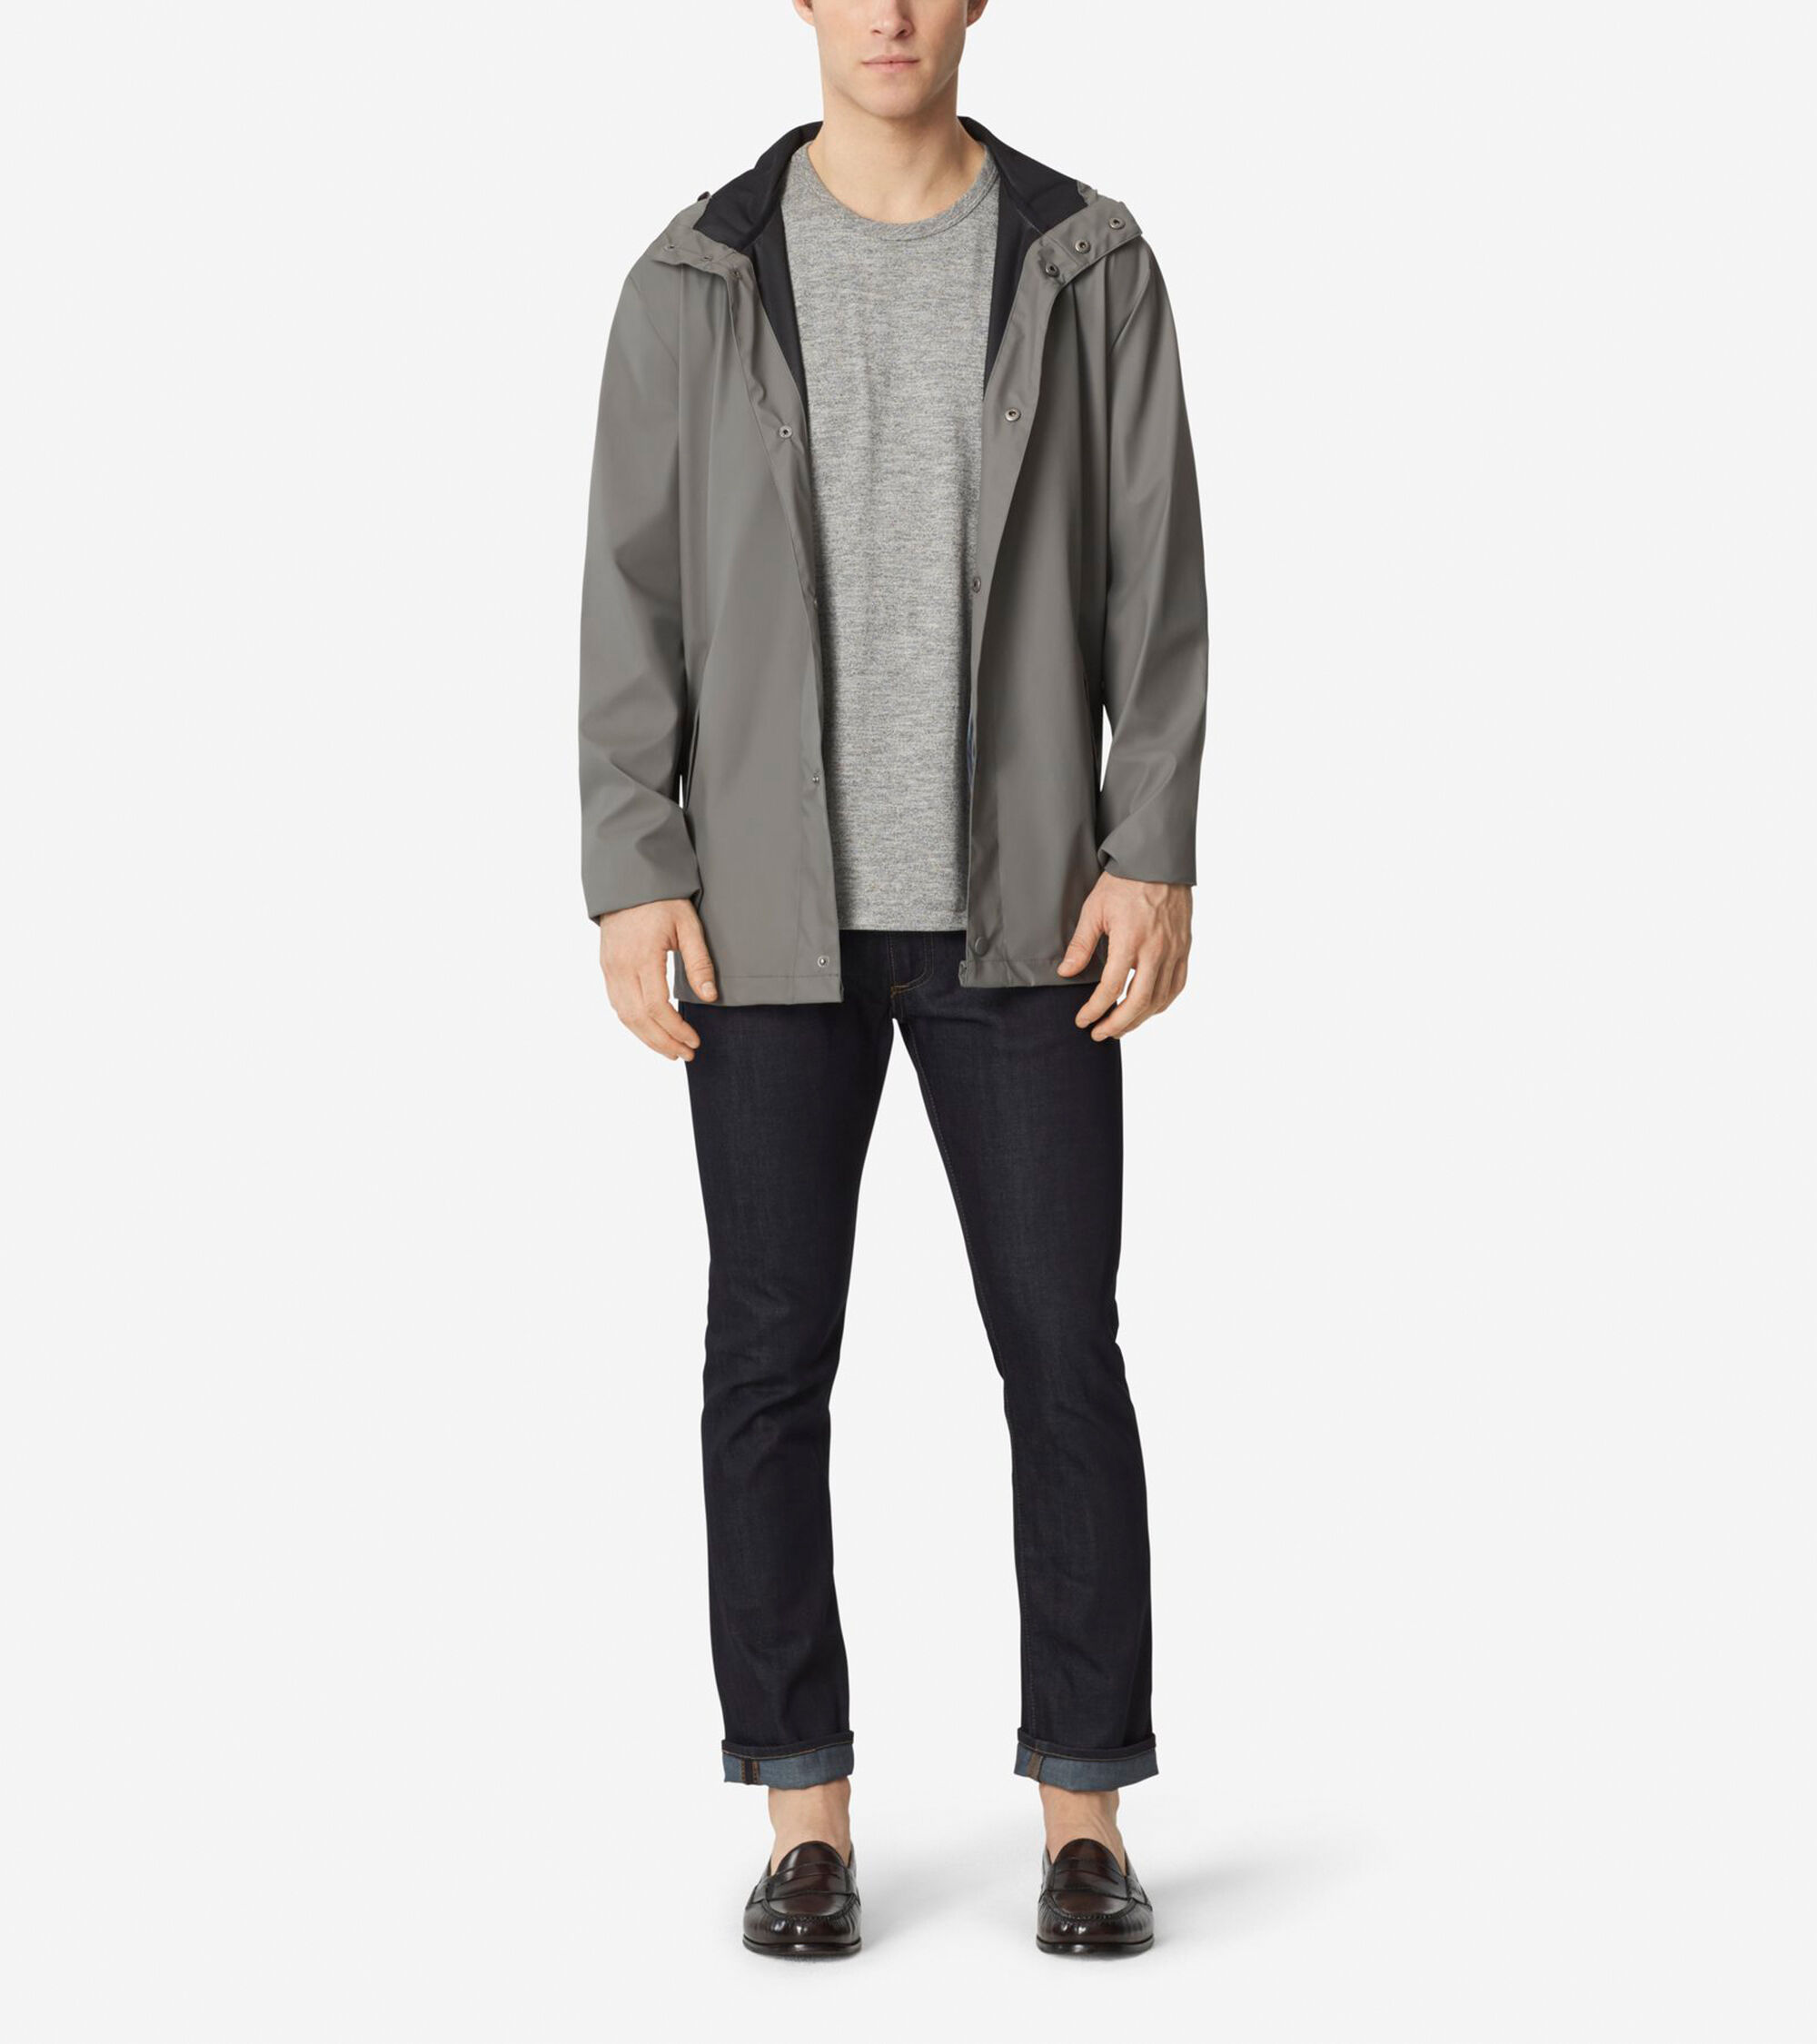 Cole Haan Mens Pinch Rain Jacket (Blue or Ironstone)